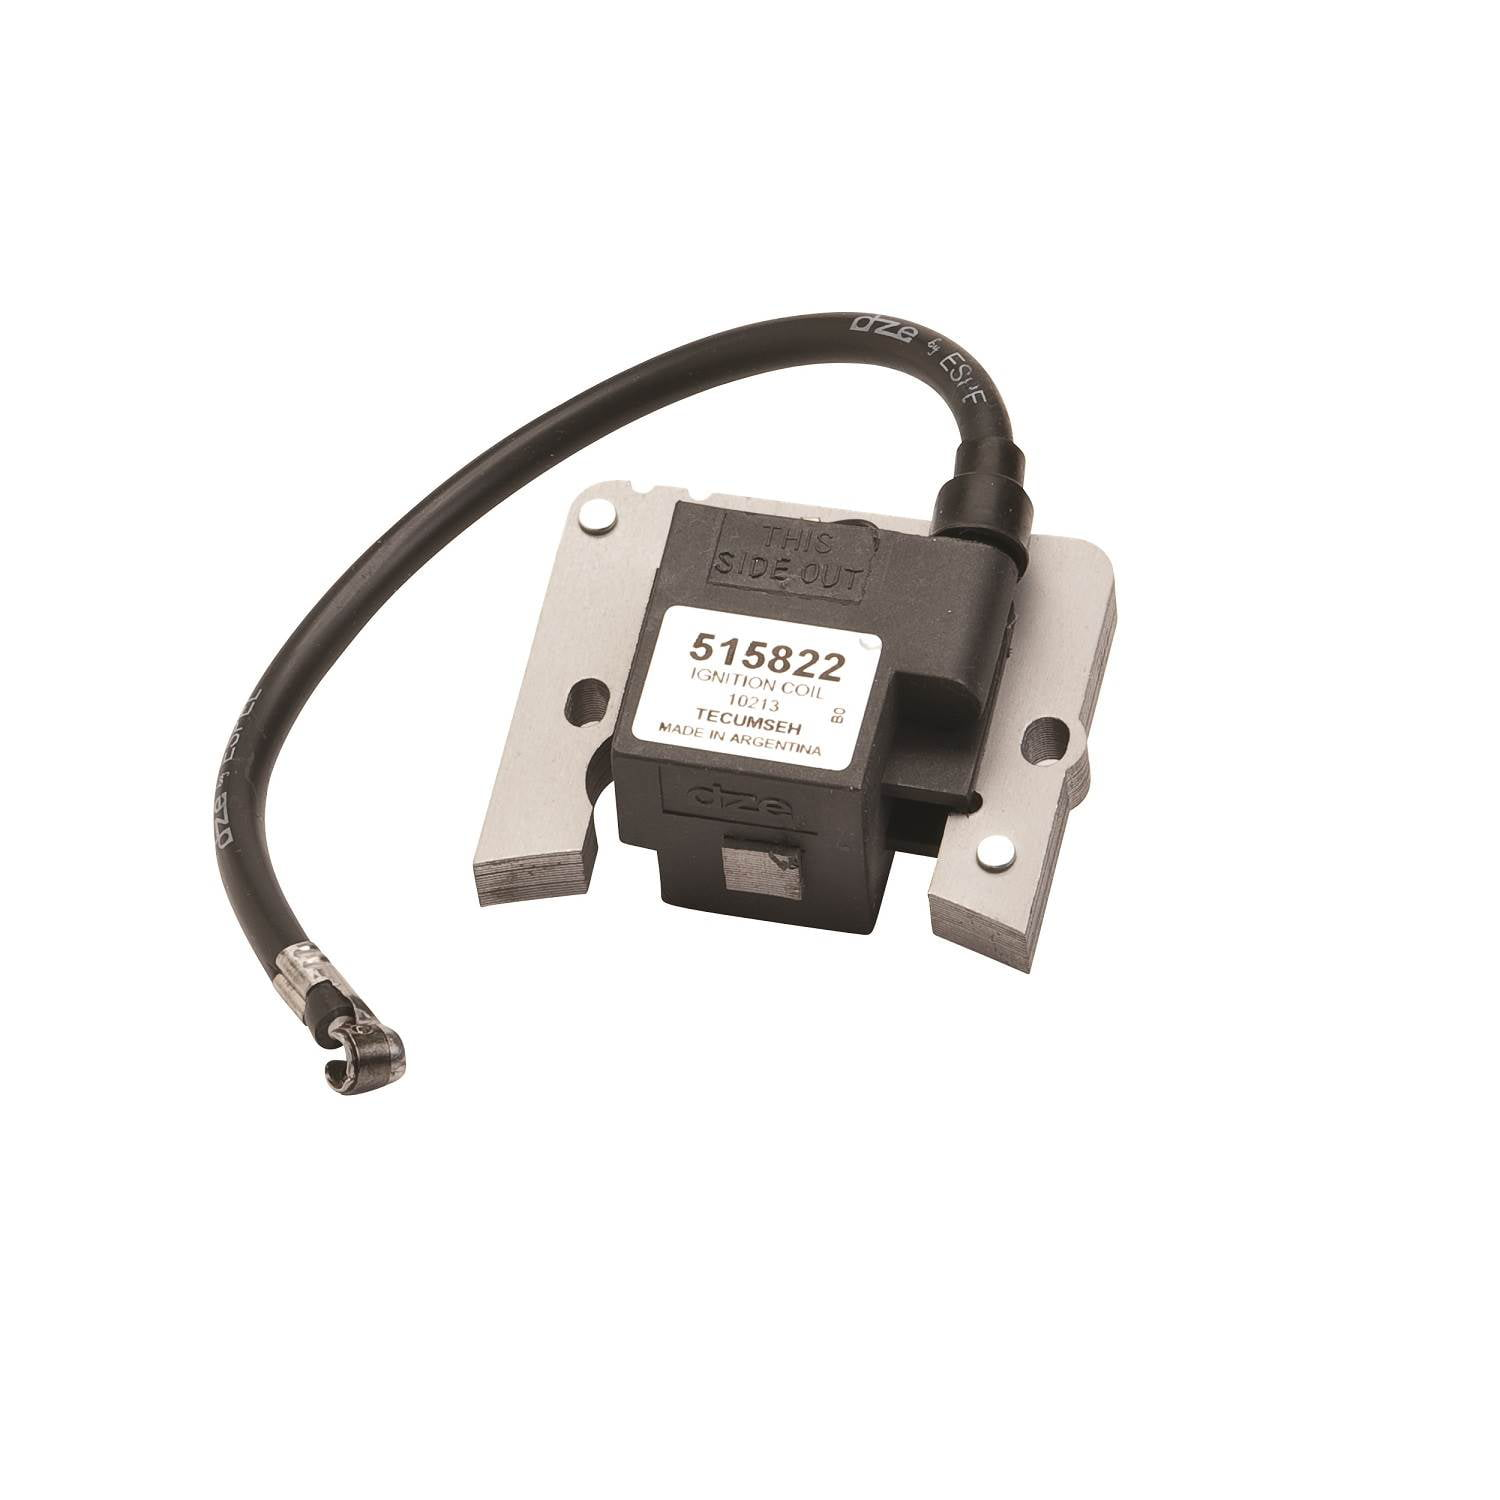 Genuine Oregon 33-343 Ignition Coil Tecumseh Part Numbers 35135A and 35135 by Oregon